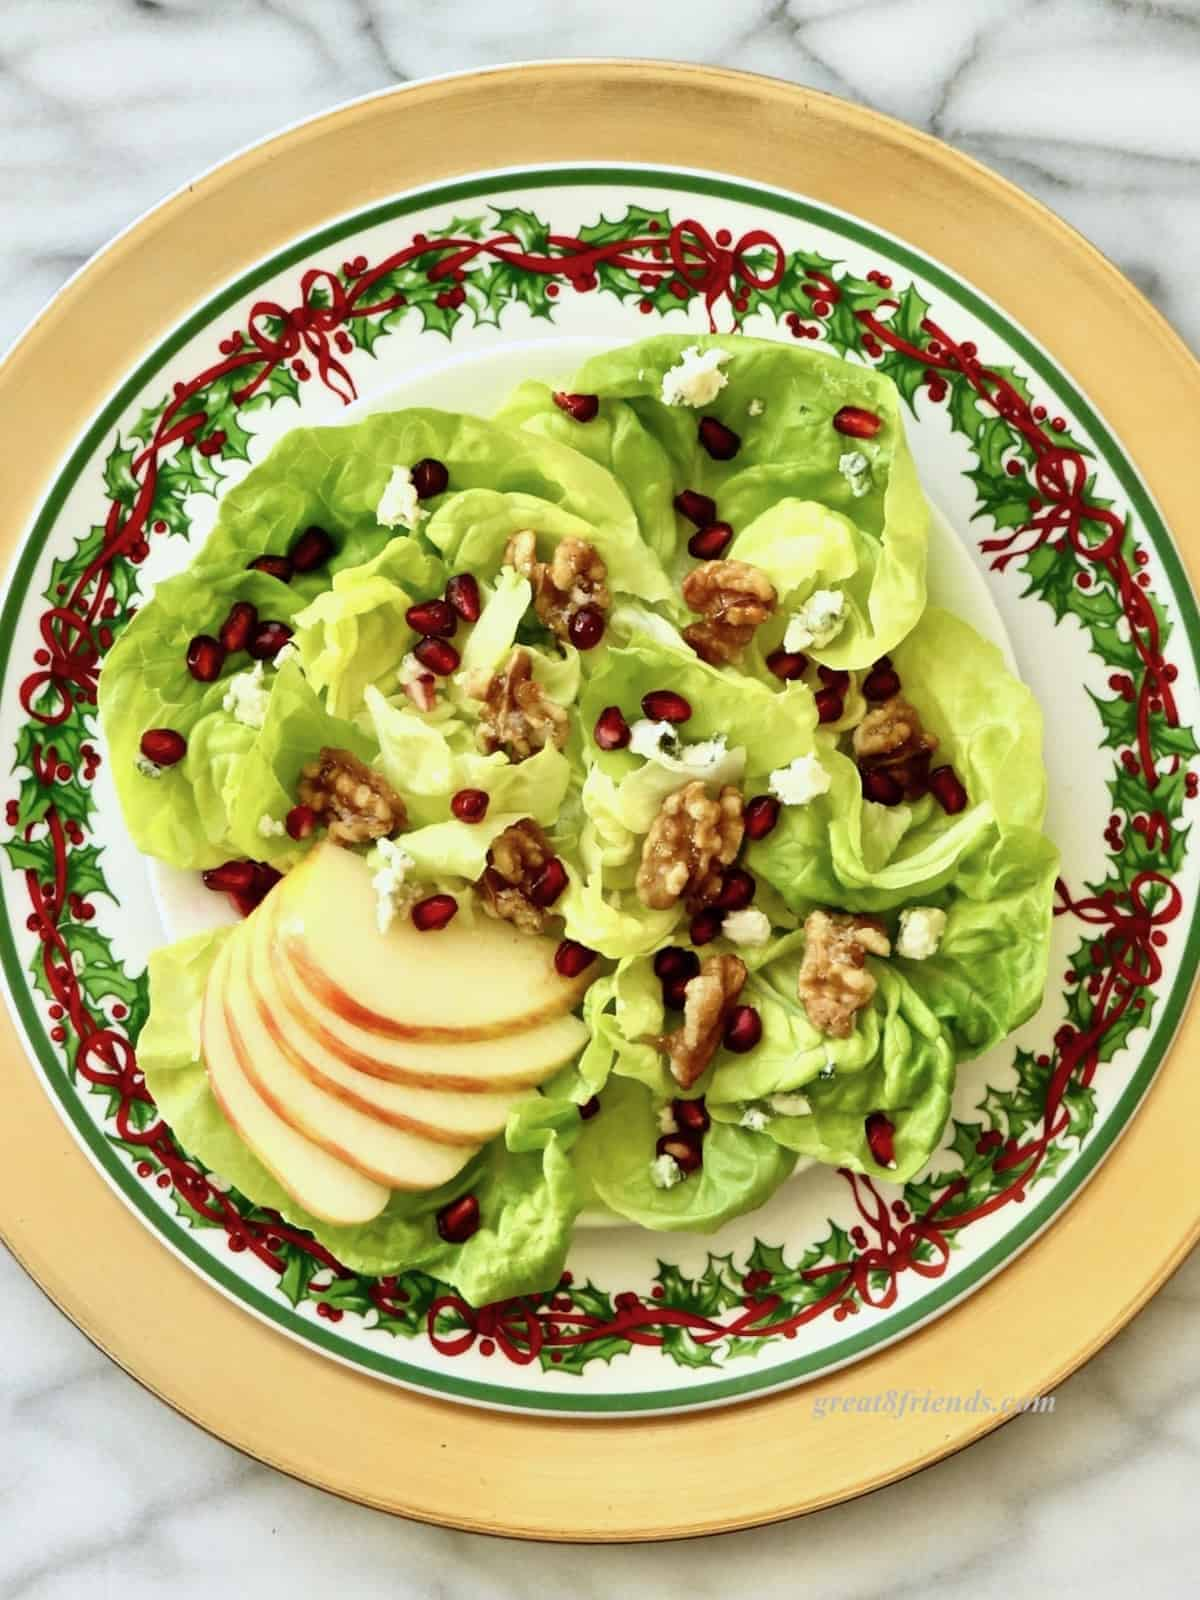 Overhead shot of Christmas plate with a pomegranate, apple and walnut salad.